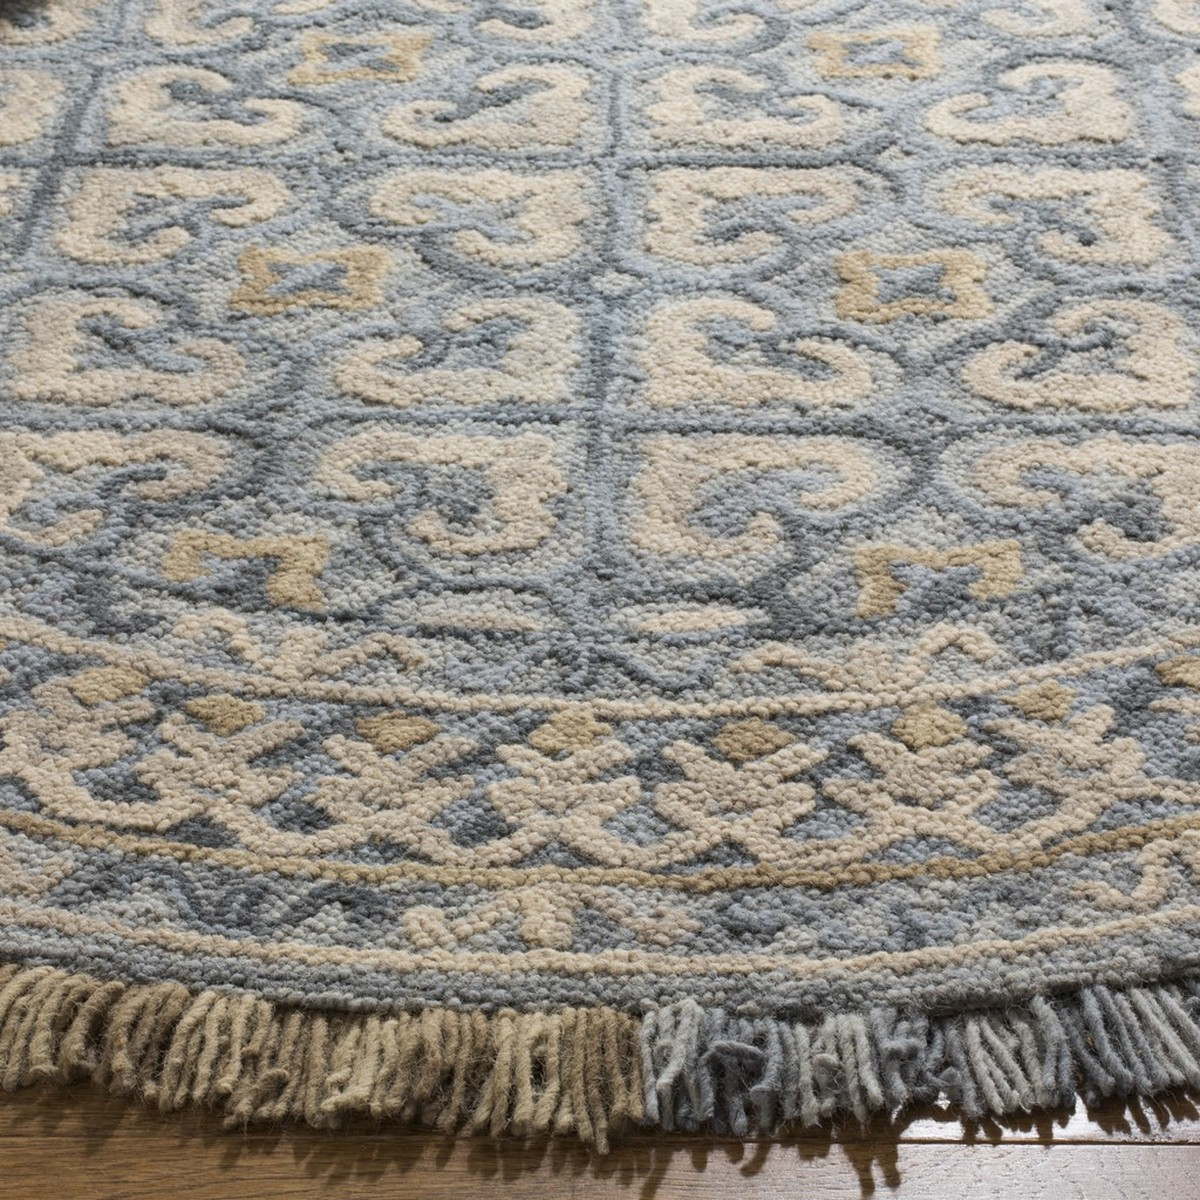 Rug Blm420a Blossom Area Rugs By Safavieh